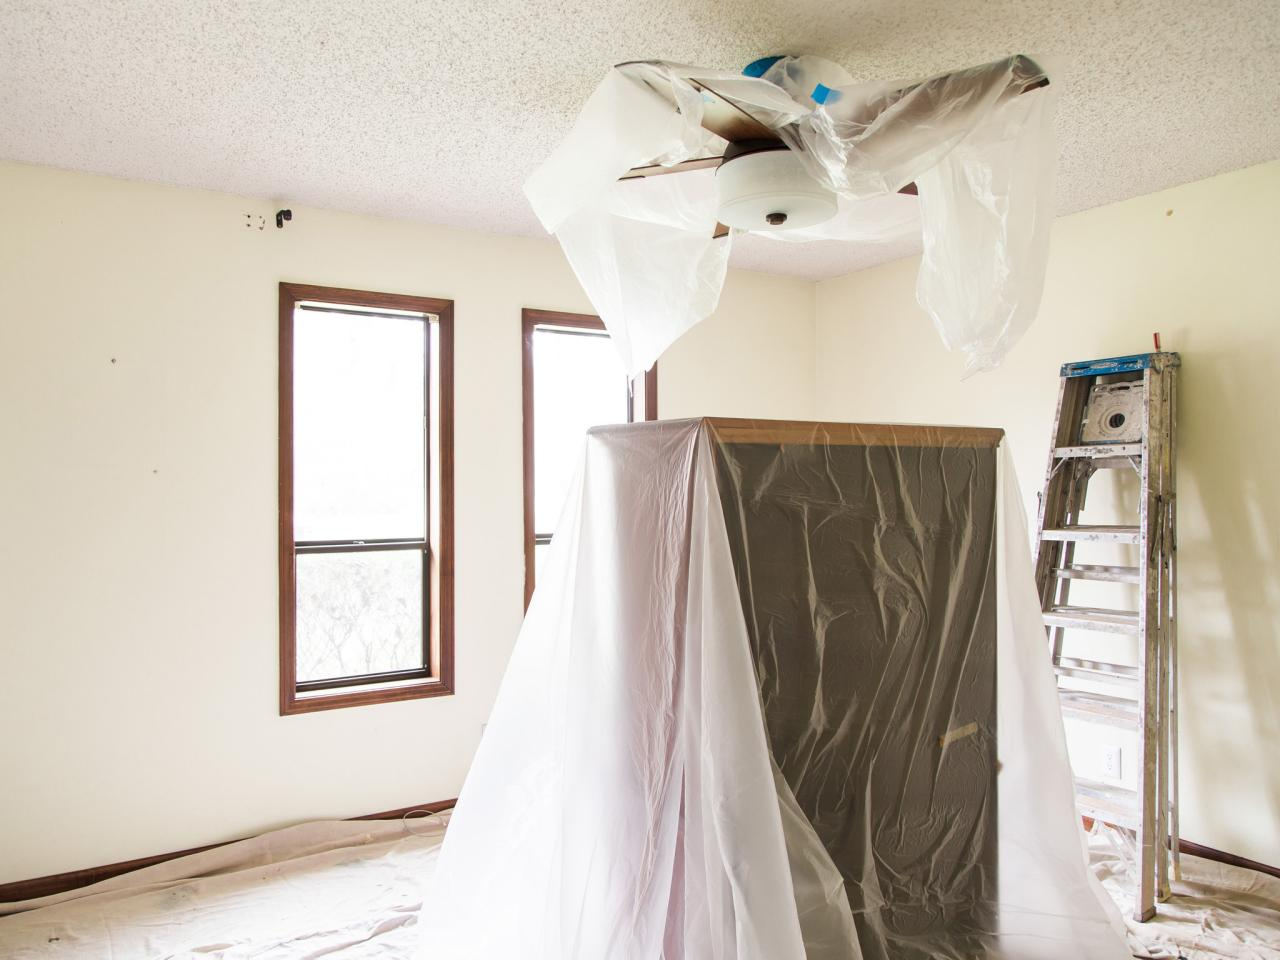 How to Remove Popcorn Ceilings| Remove Popcorn Ceilings, DIY Home Improvement, Home Improvement Projects, DIY Home Decor, Home Decor Hacks, Do It Yourself Home Projects, Fast and Easy Projects for the Home, Popular Pin